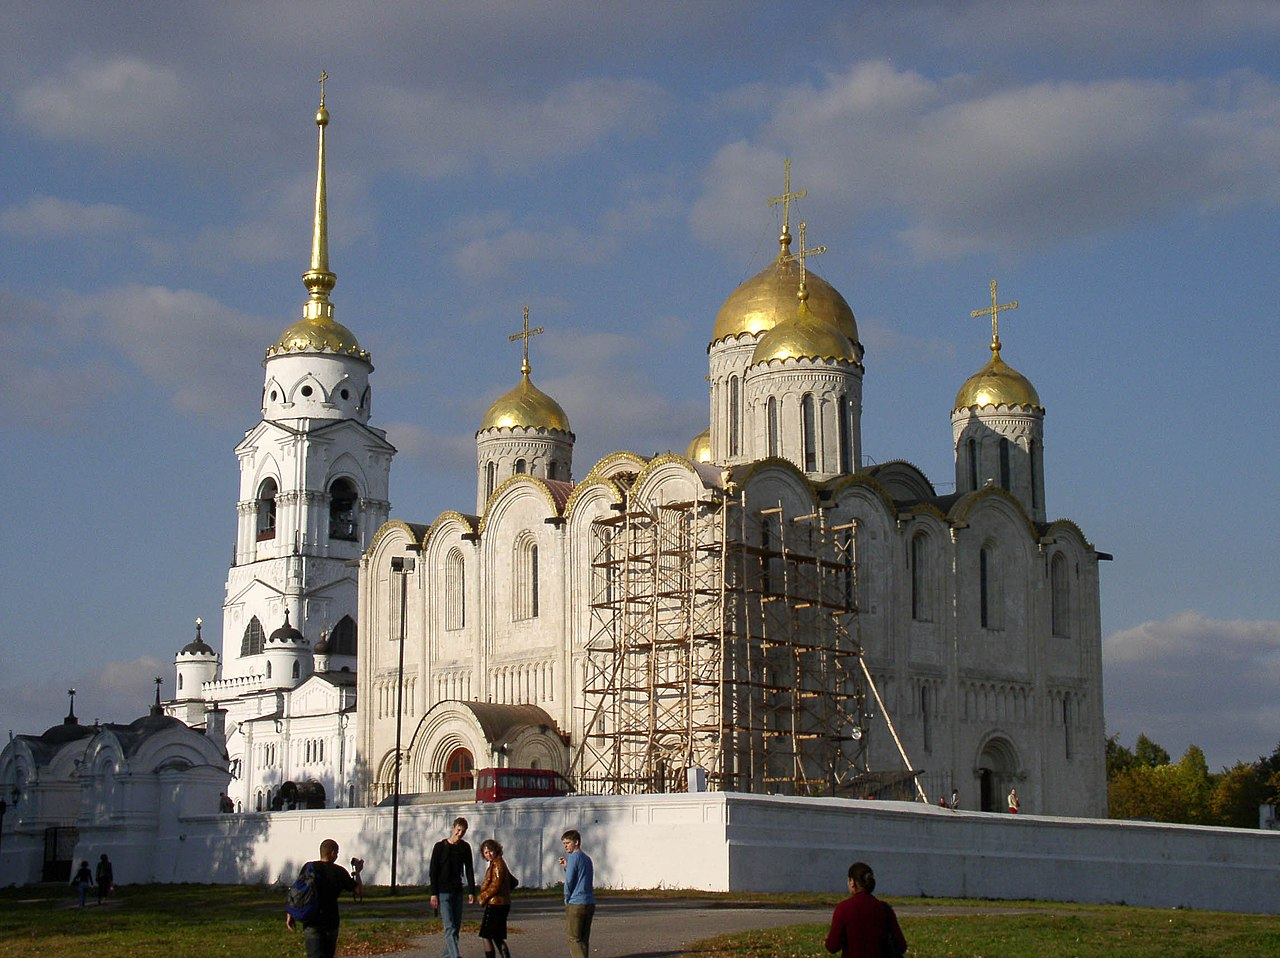 File:Russia-Vladimir-Assumption Cathedral-8.jpg - Wikipedia